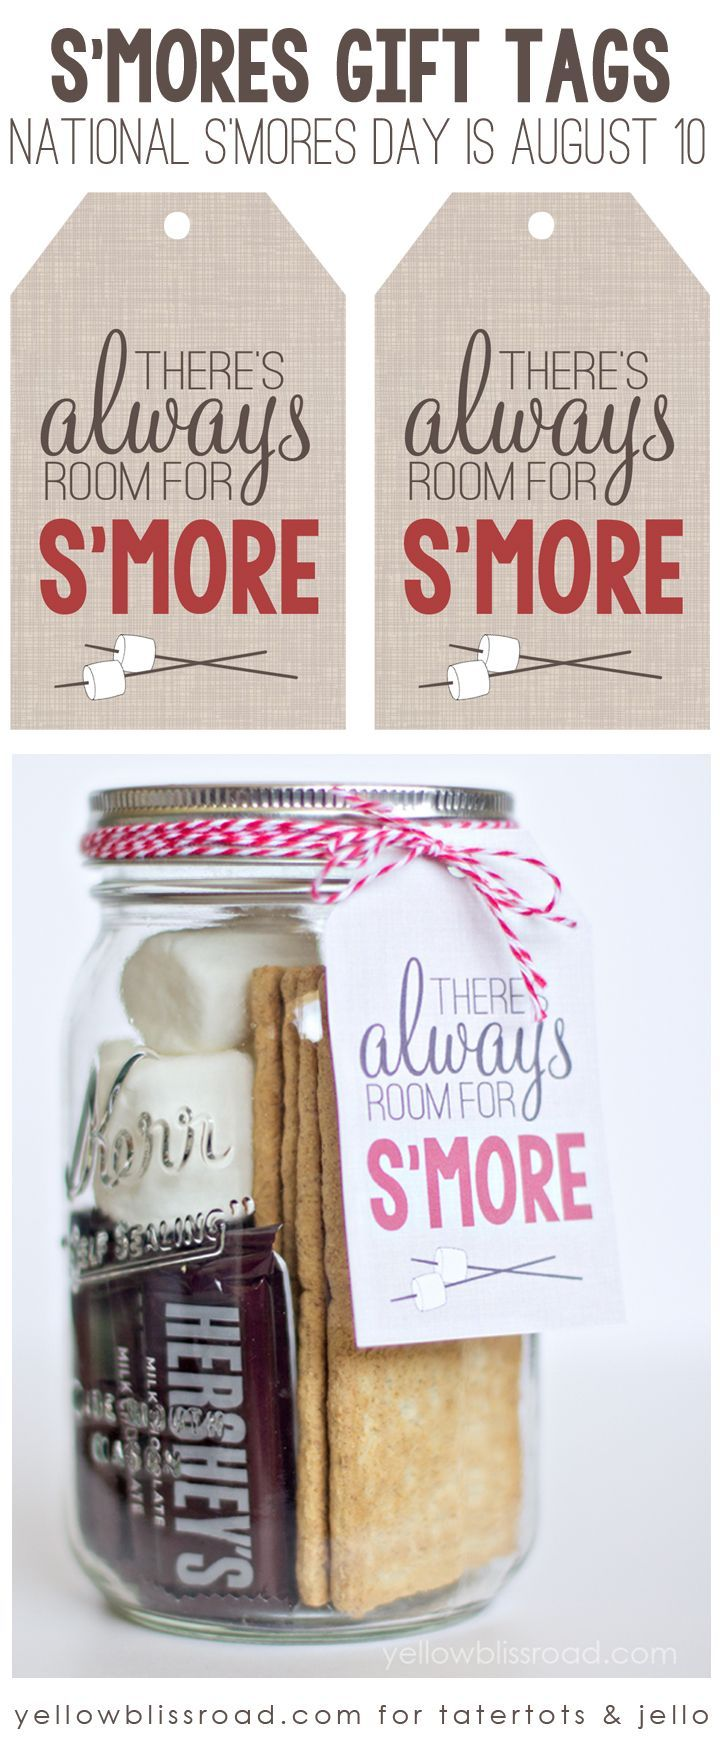 """There's Always Room for S'More"" free printable graphic. Perfect for National S'Mores Day August 10!!"